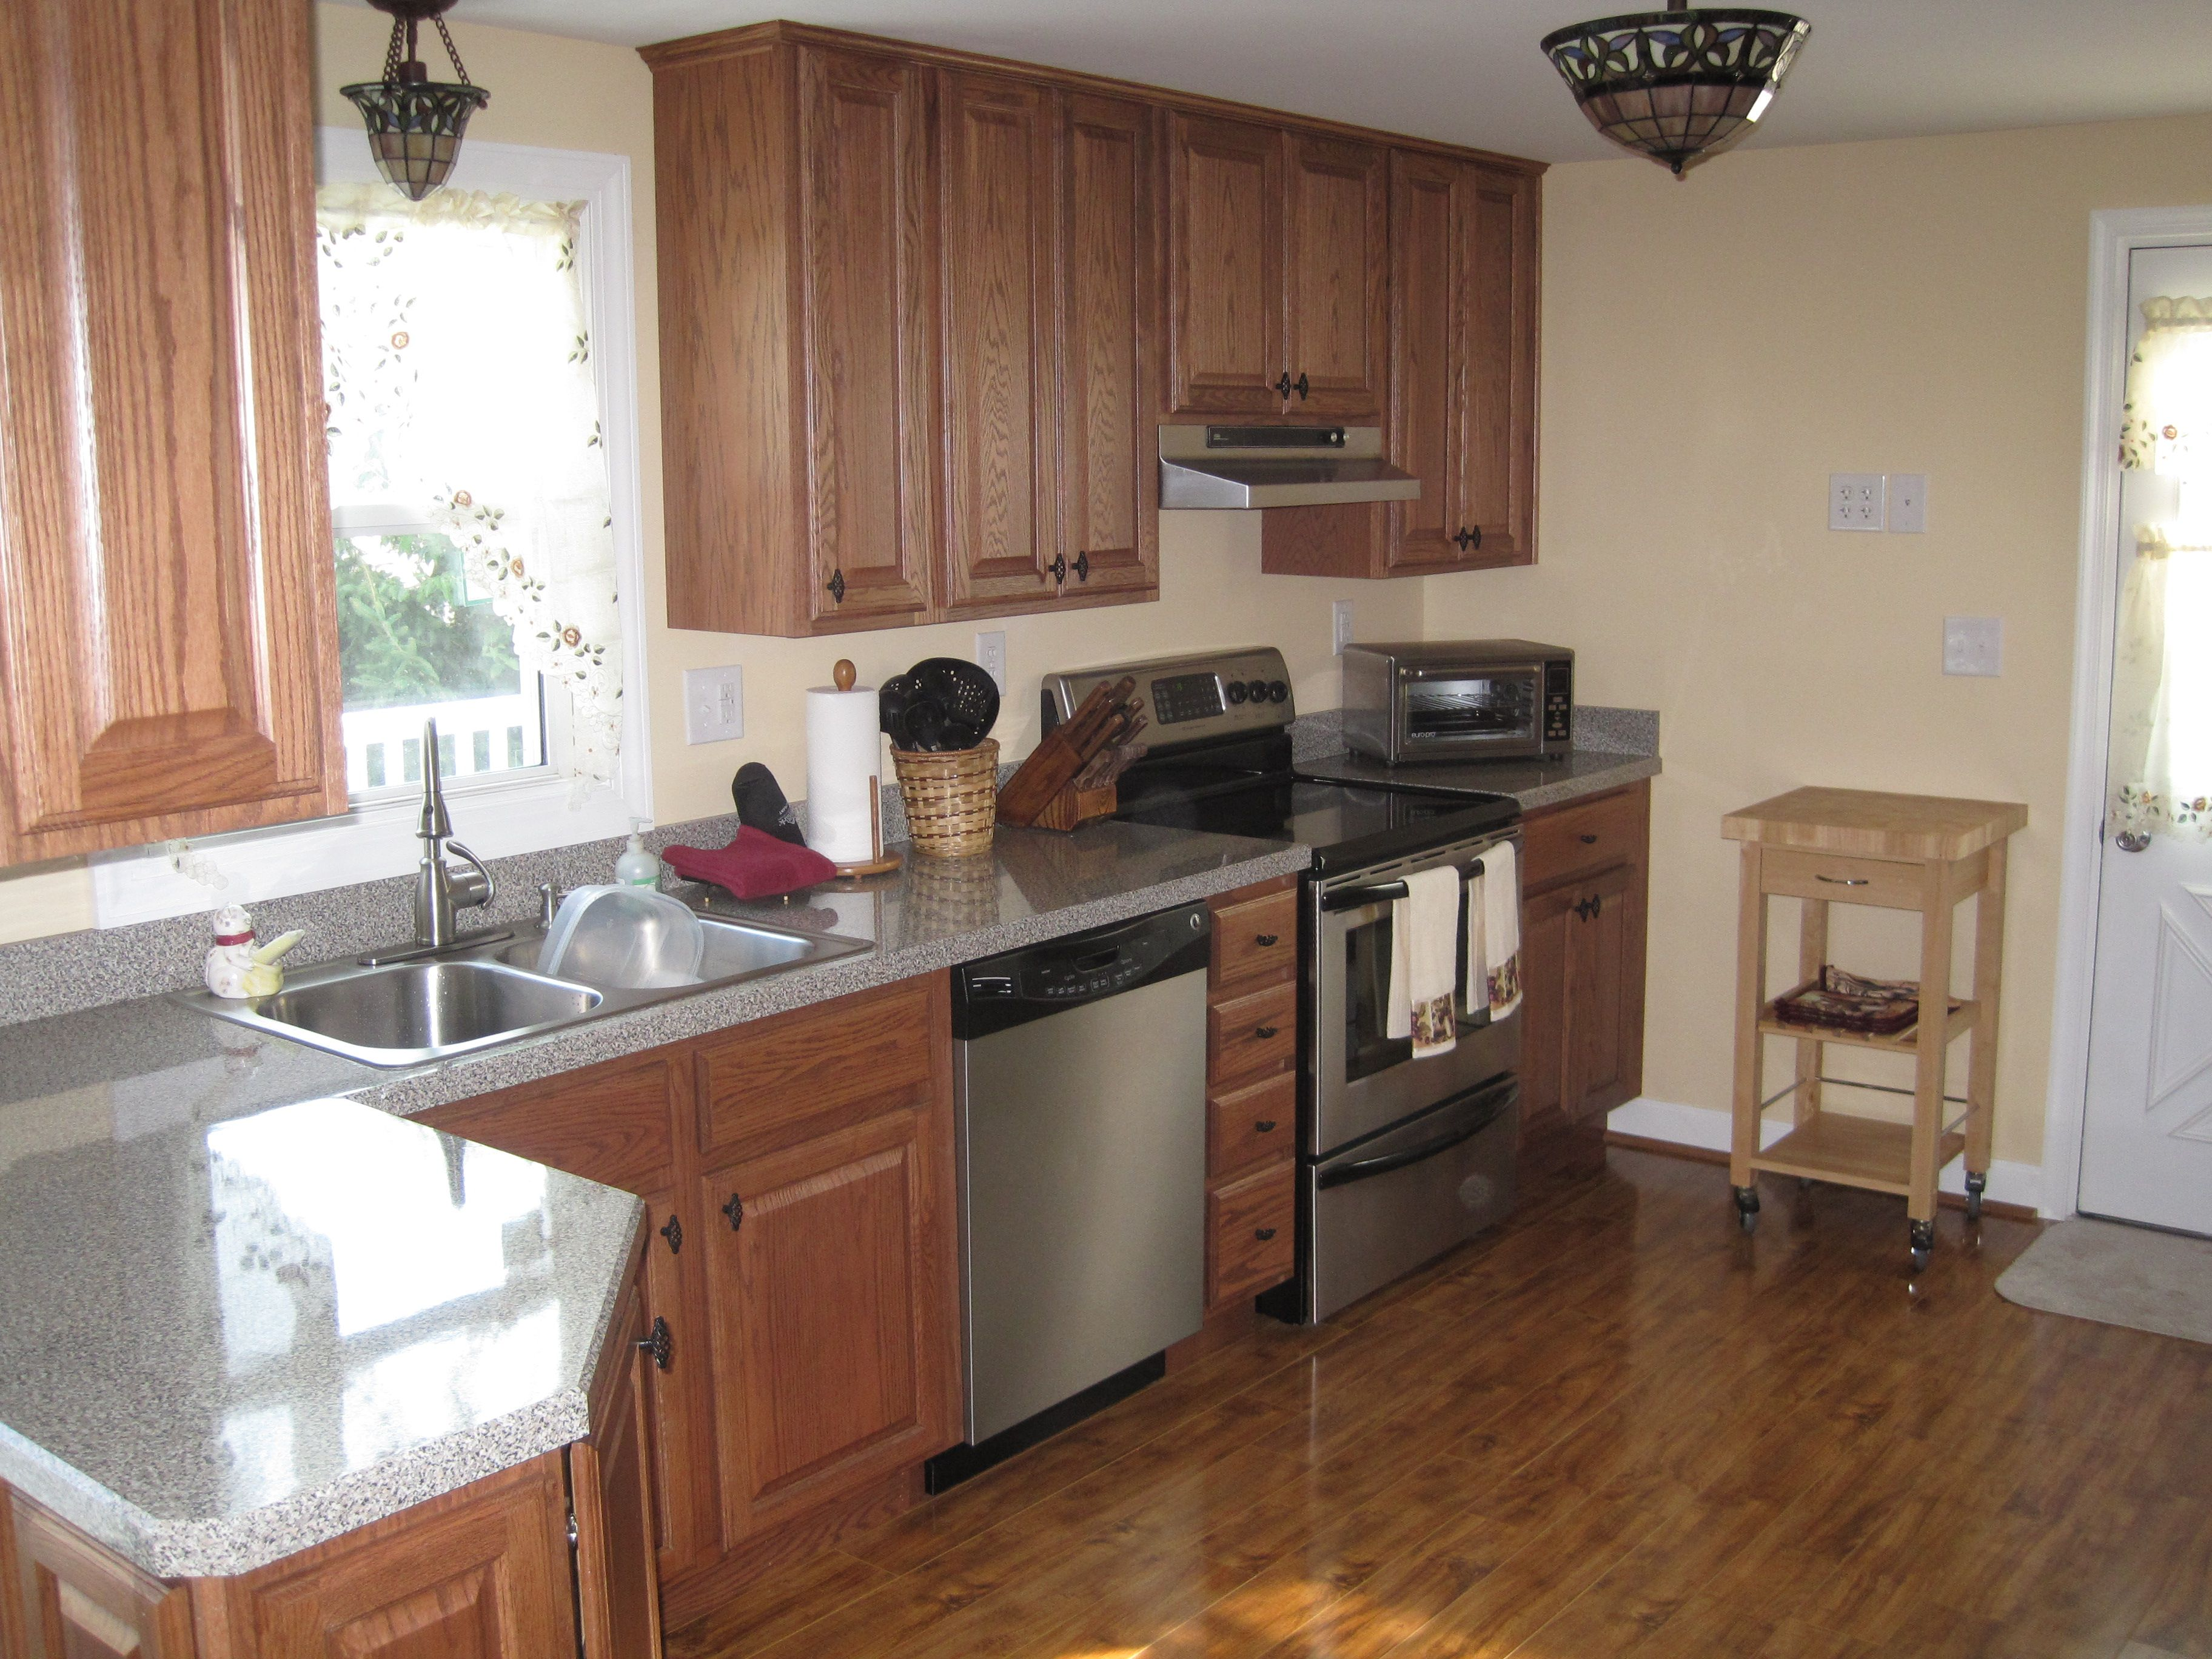 Kitchen Remodeling Services By Handyman Connection Winchester Va Offers Professional And Expert For Your Remodel